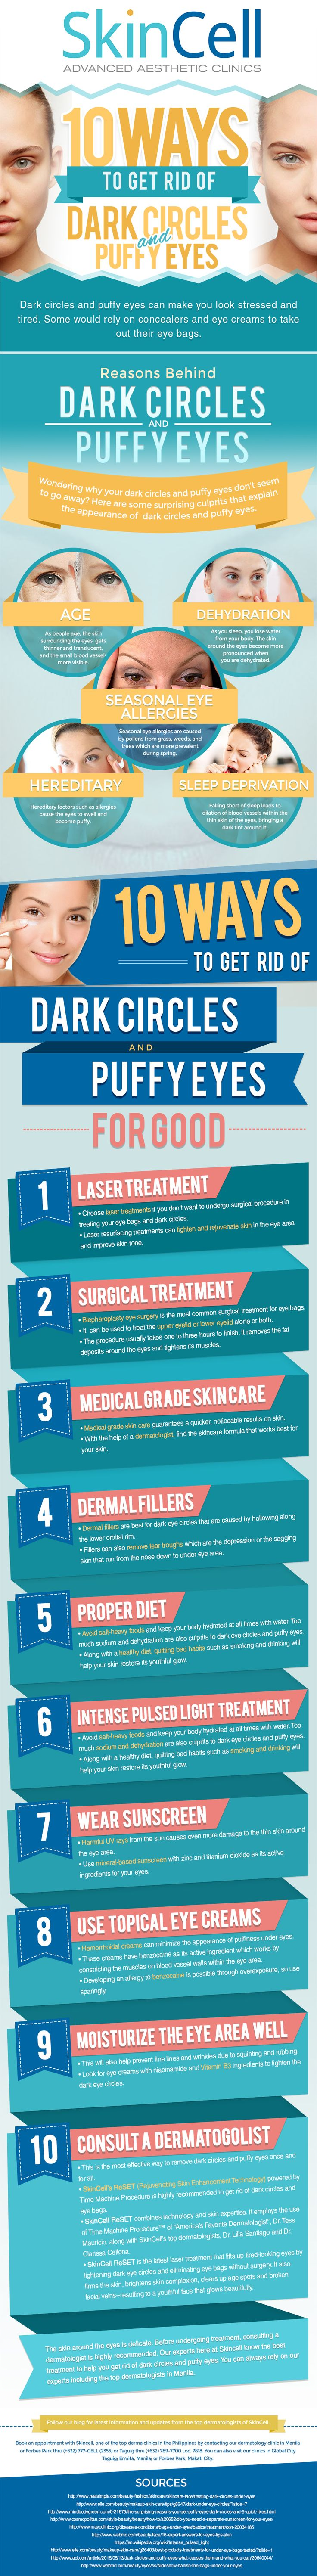 10 Ways to Get Rid of Dark Circles and Puffy Eyes #Infographic #Eyebags